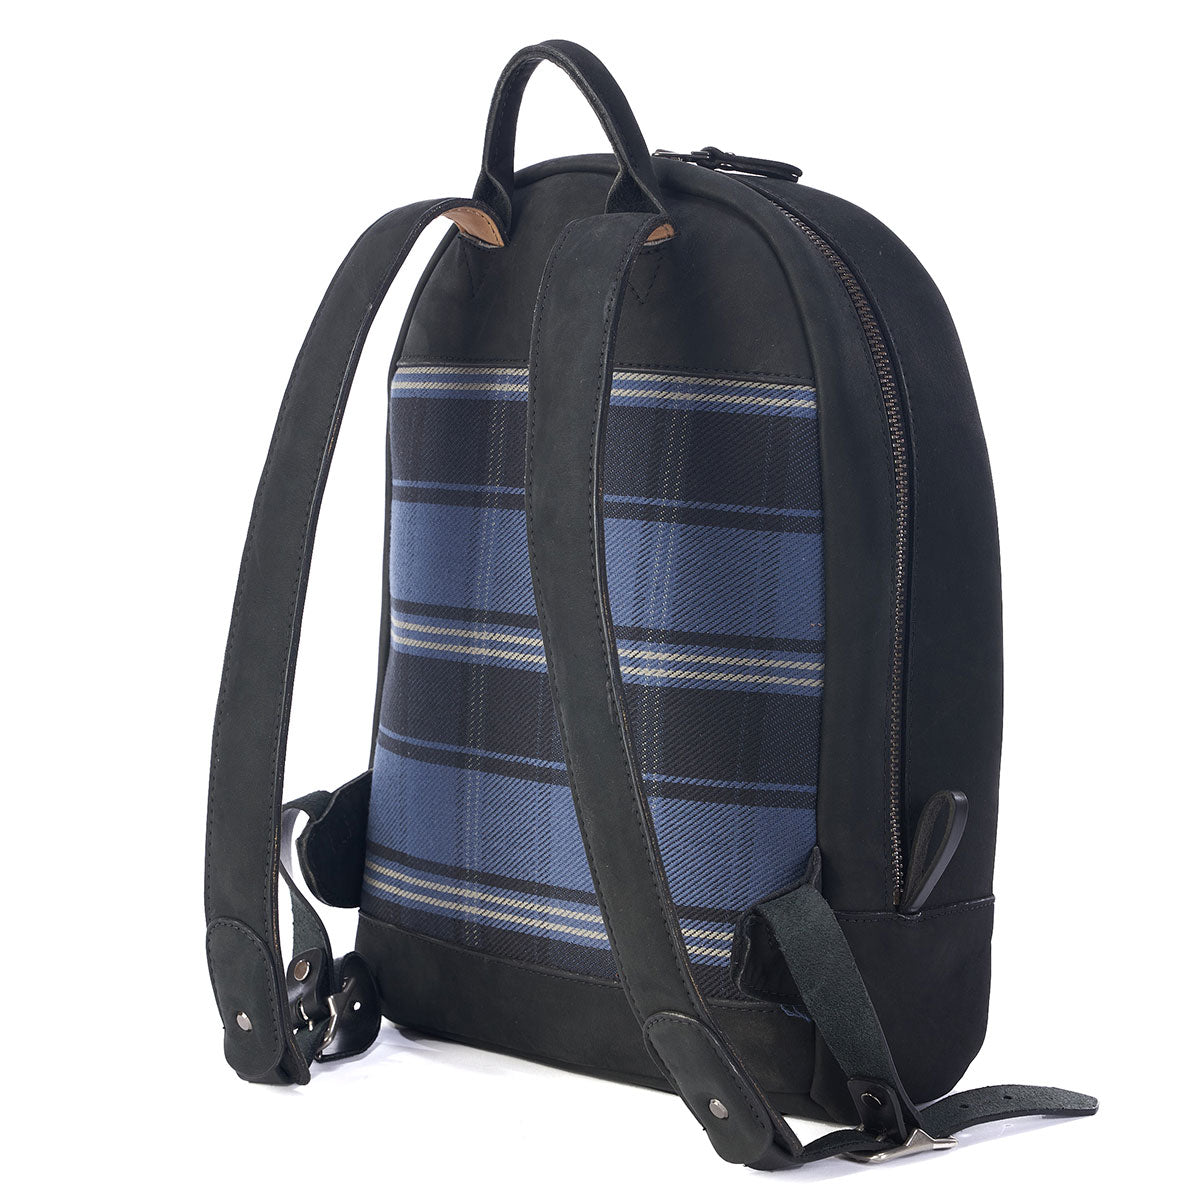 Logan Backpack No. 51 (CLOSED)